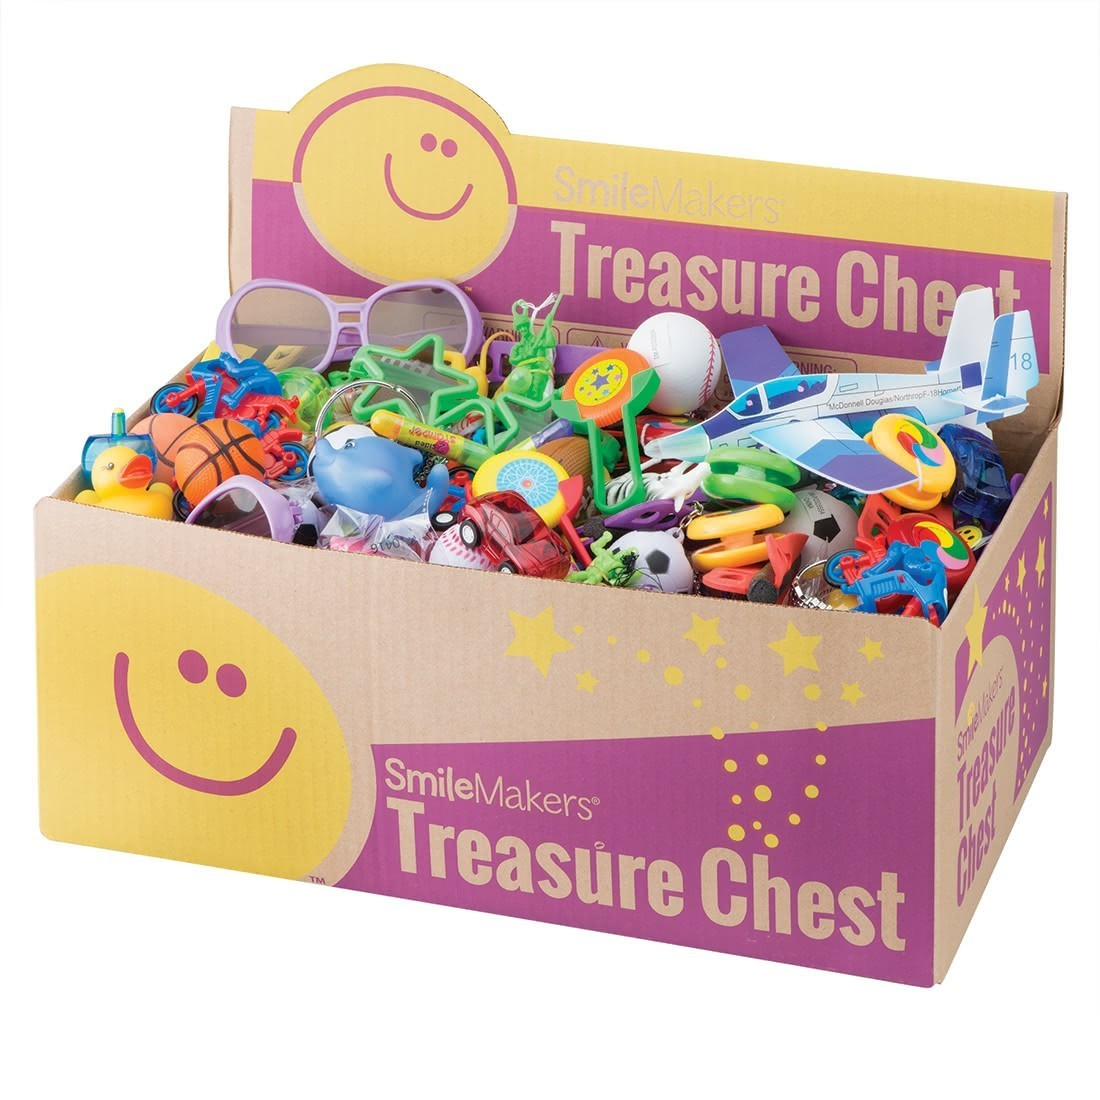 Value Treasure Chest [image]